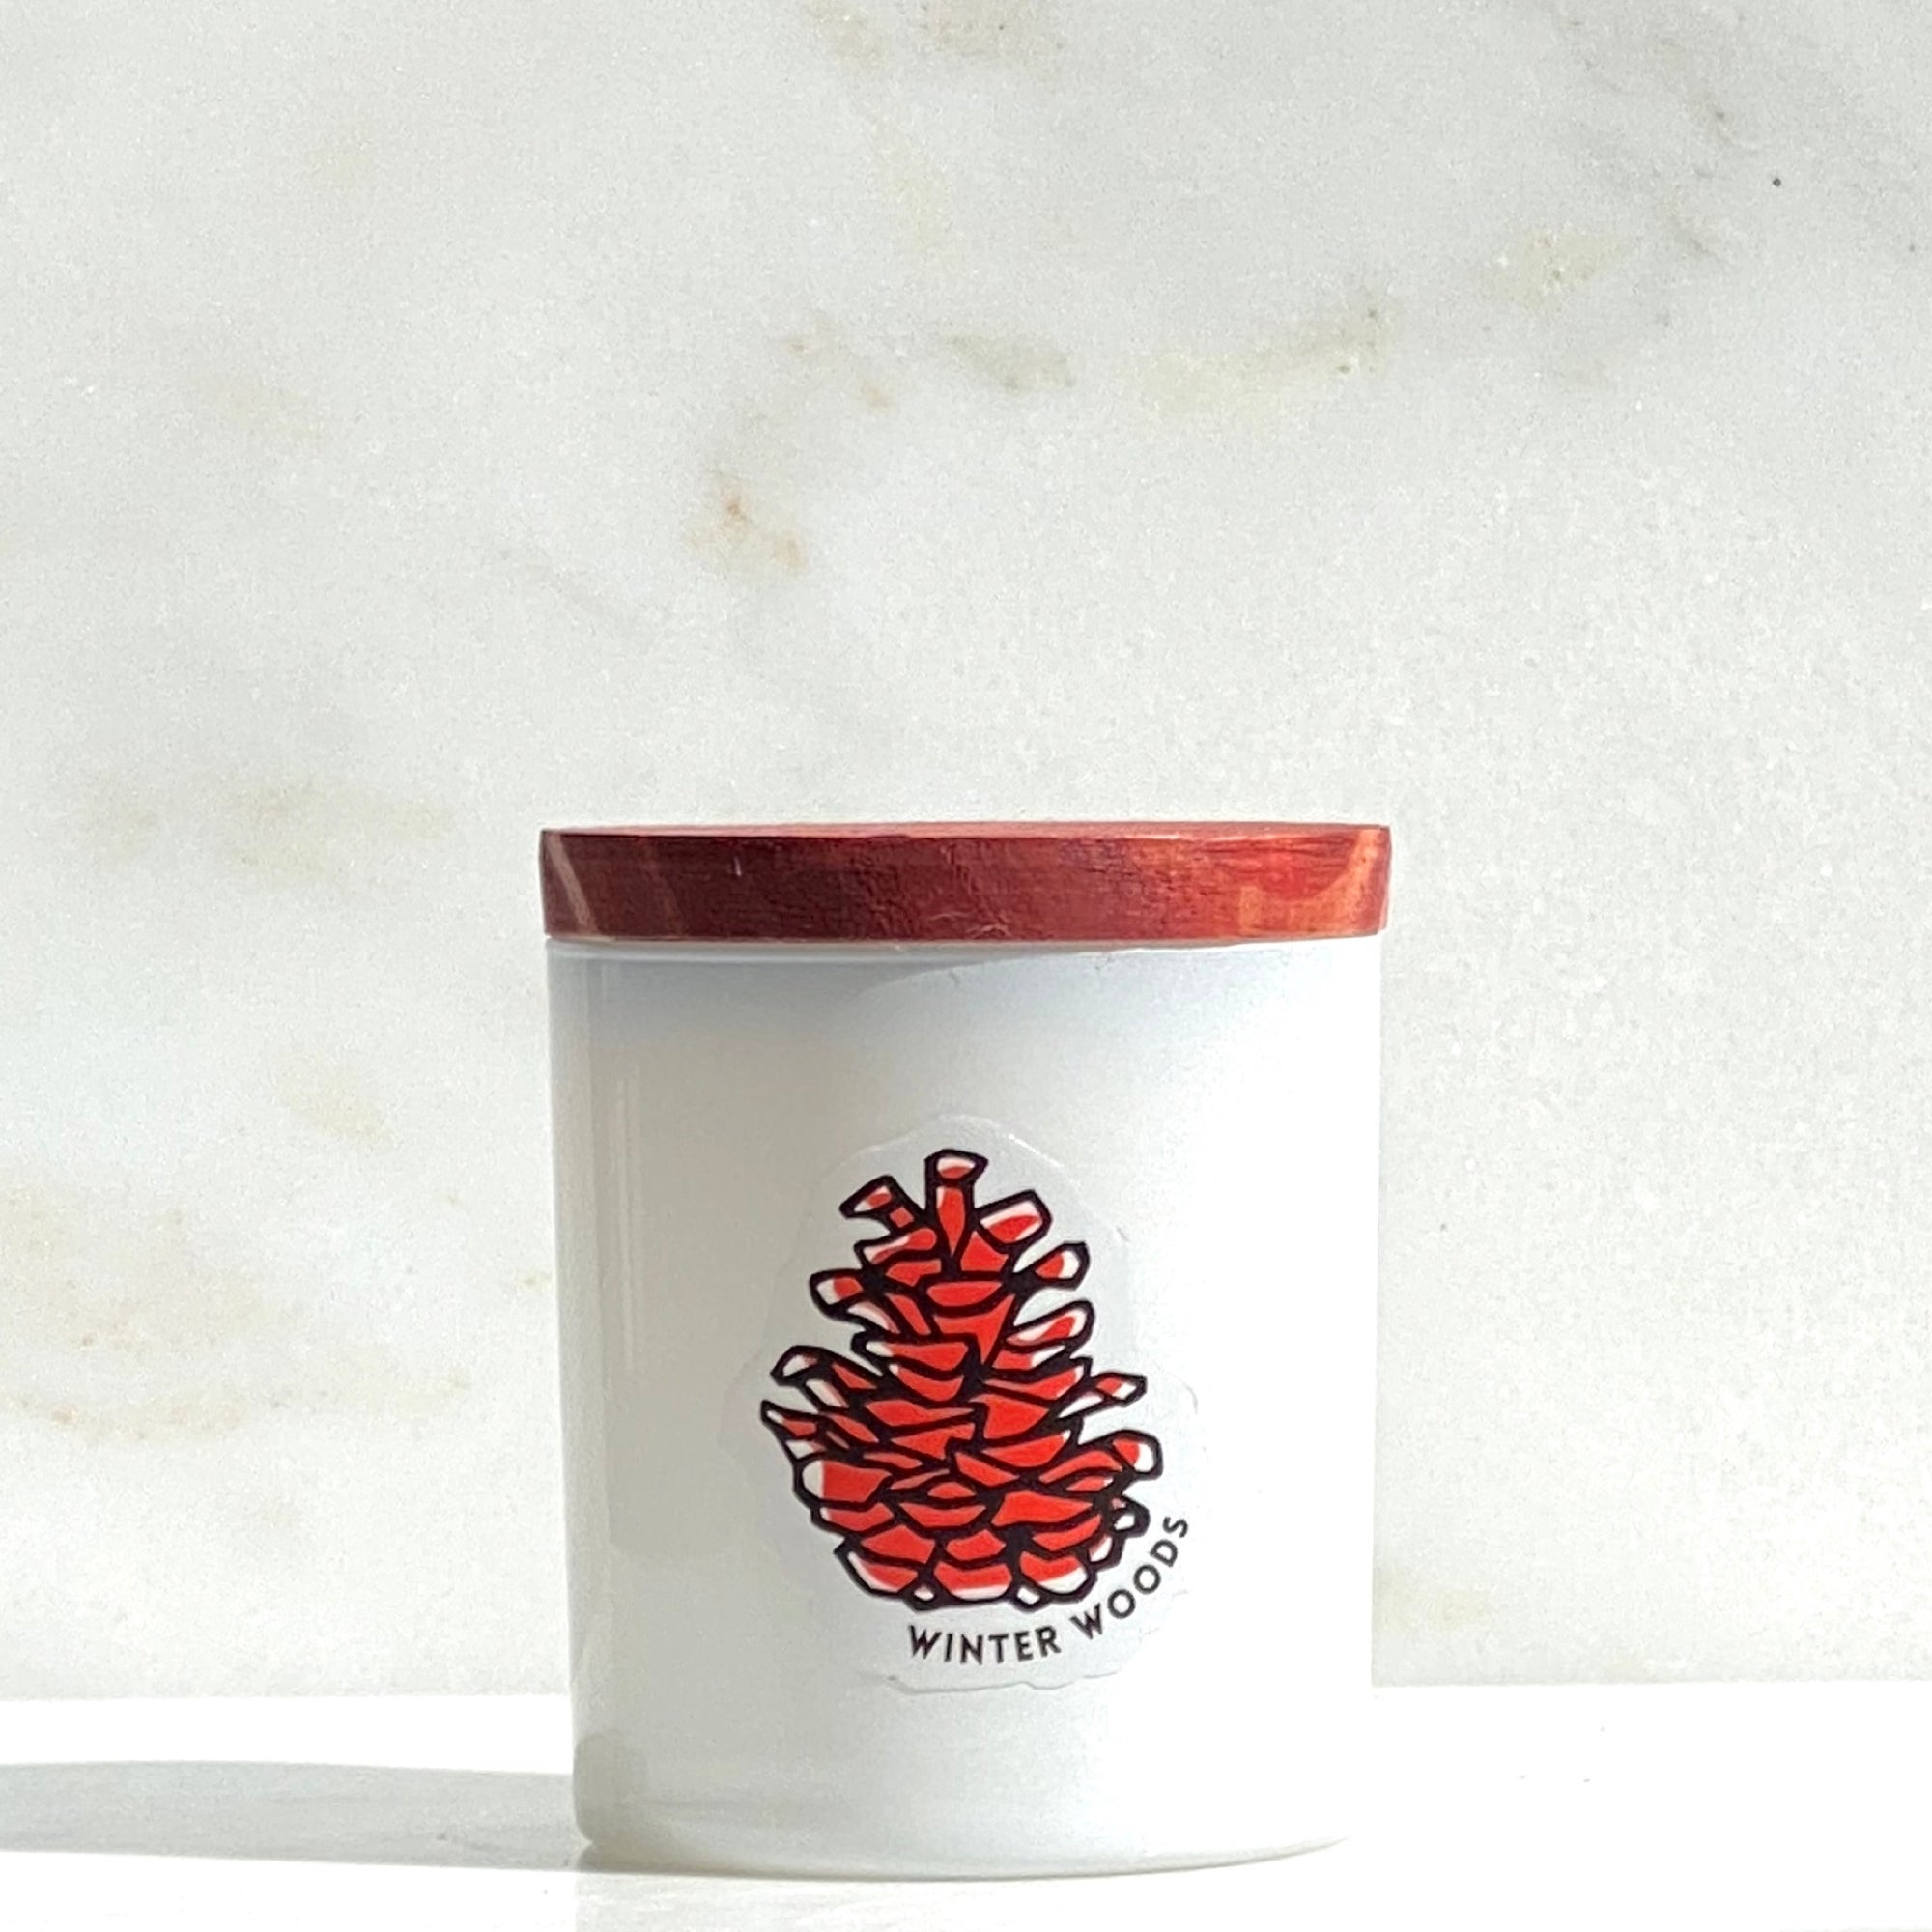 Winter Woods Holiday Candle